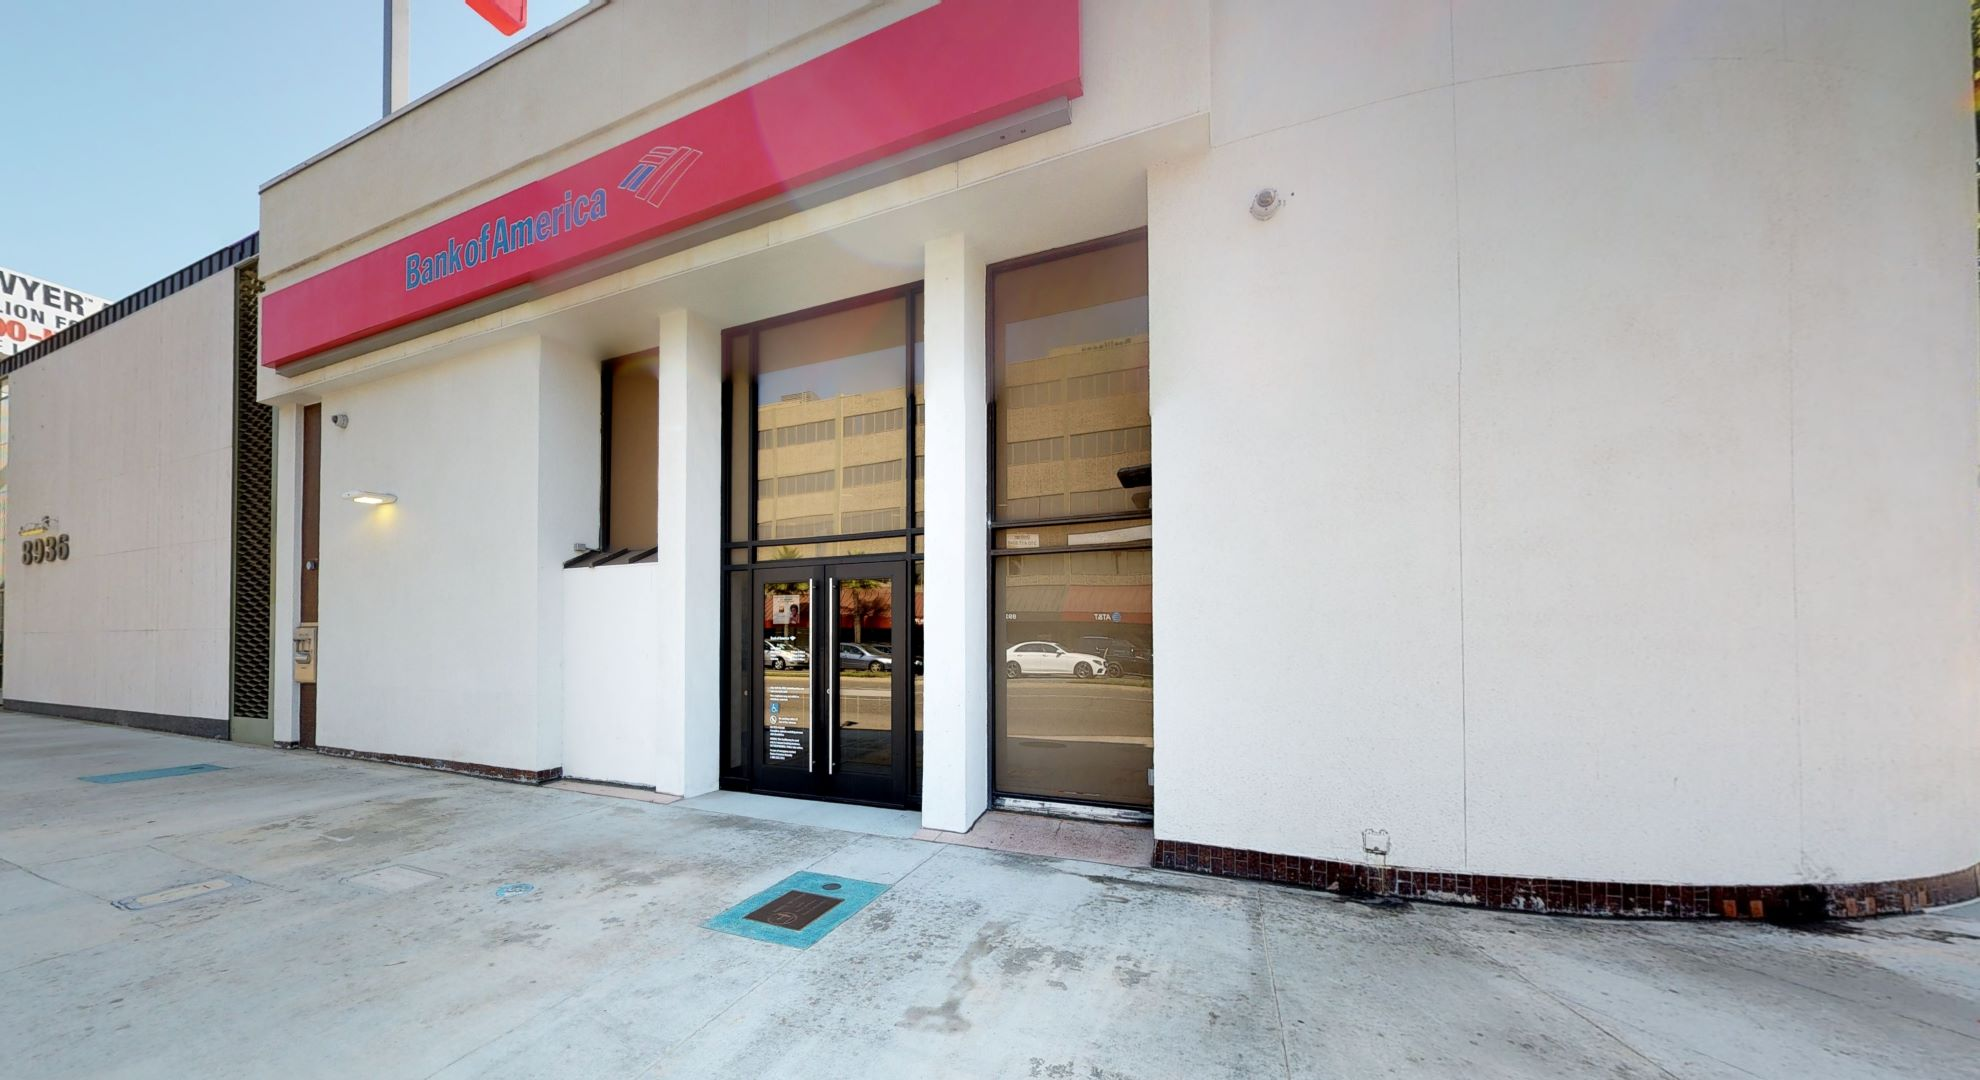 Bank of America financial center with walk-up ATM | 8946 S Sepulveda Blvd, Los Angeles, CA 90045